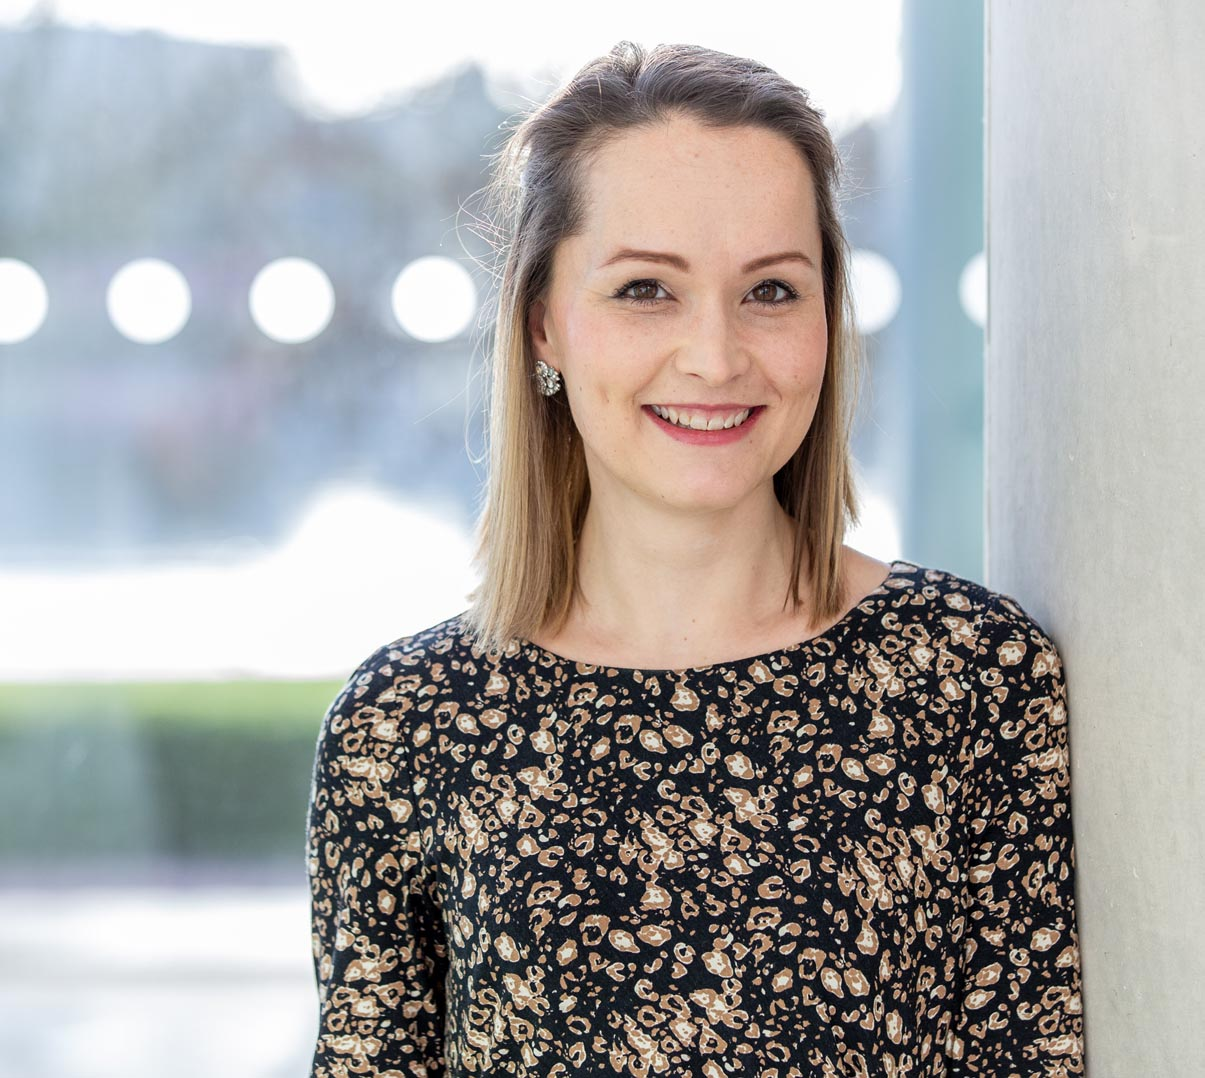 Bethan Cooke, Partner at Acuity Law